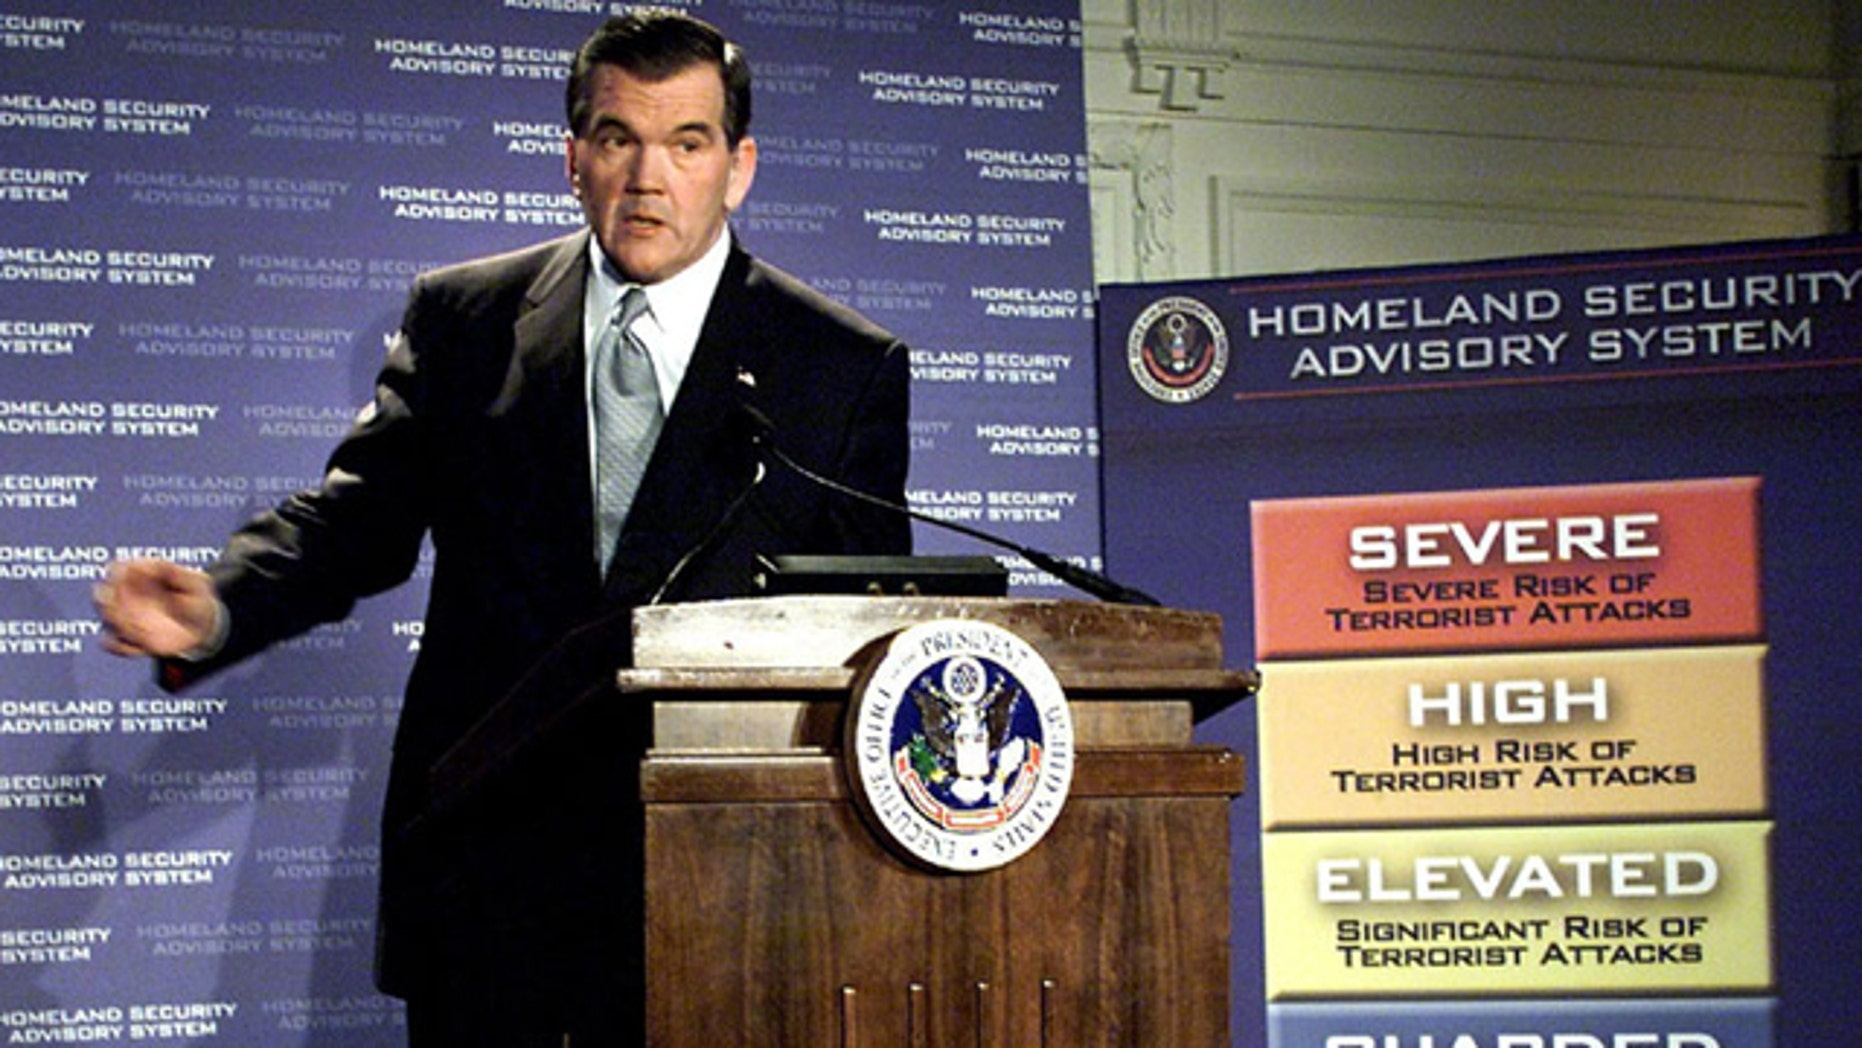 In this March 12, 2002, file photo, then-Homeland Security Director Tom Ridge discusses a color-coded terror alert system in Washington. (AP Photo)